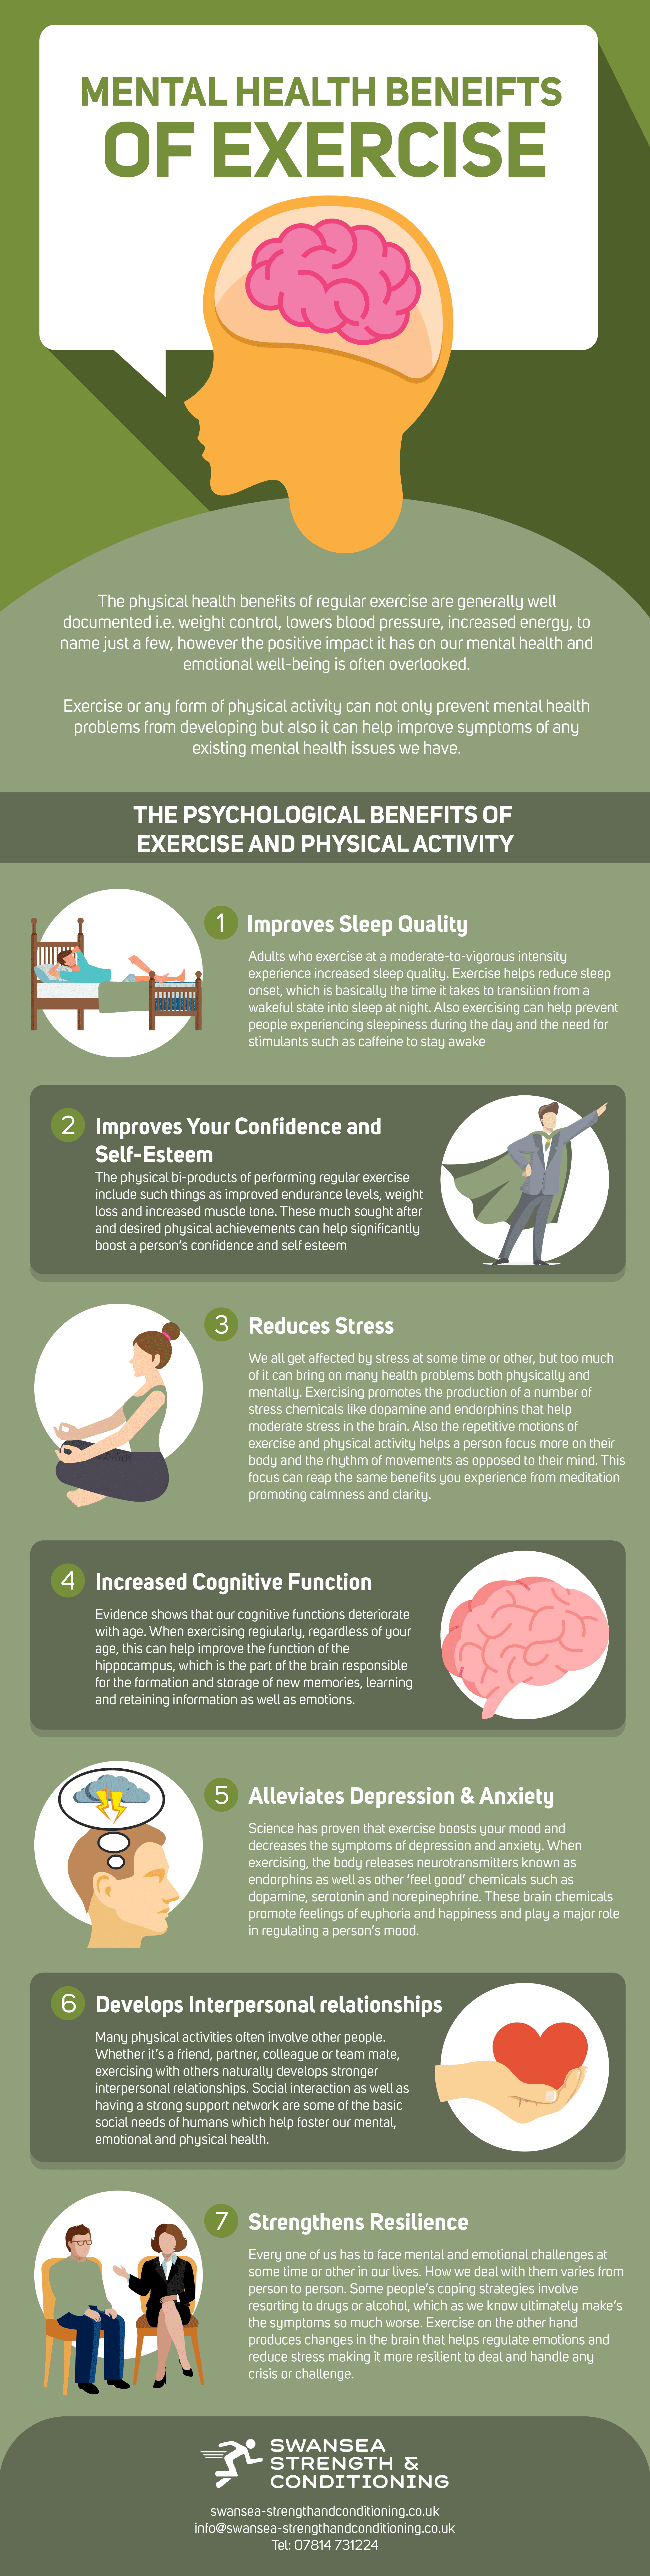 nfographic laying out mental health benefits of regular exercise and physical activity